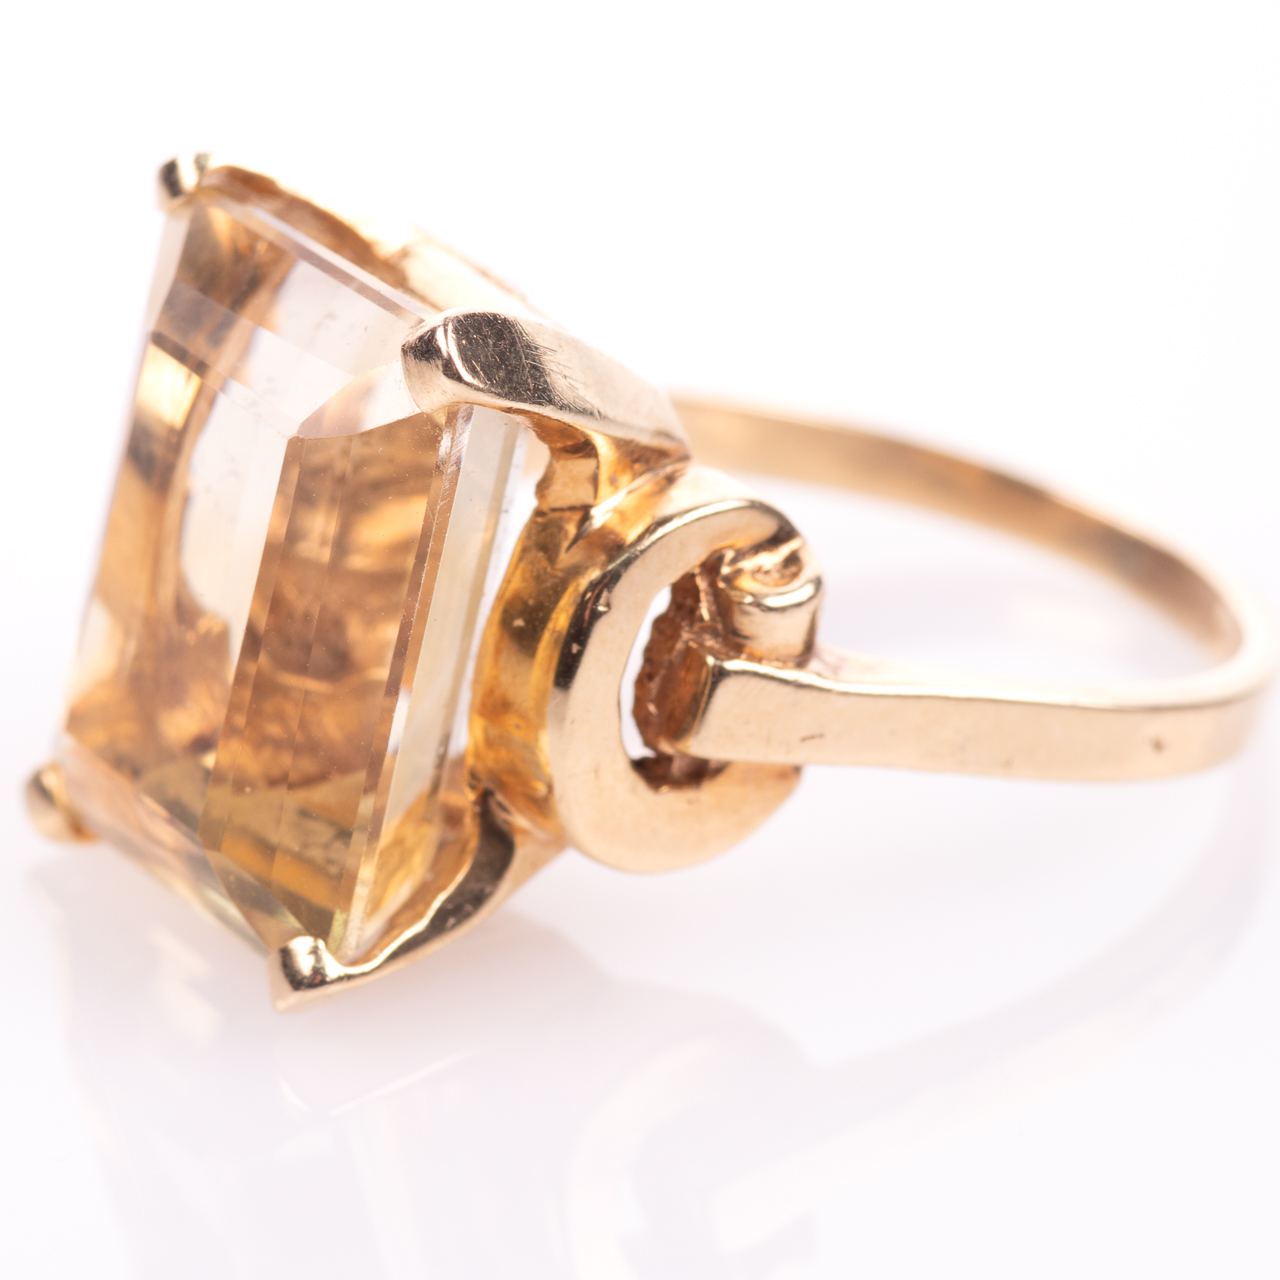 14ct Gold 15ct Citrine Ring - Image 4 of 7